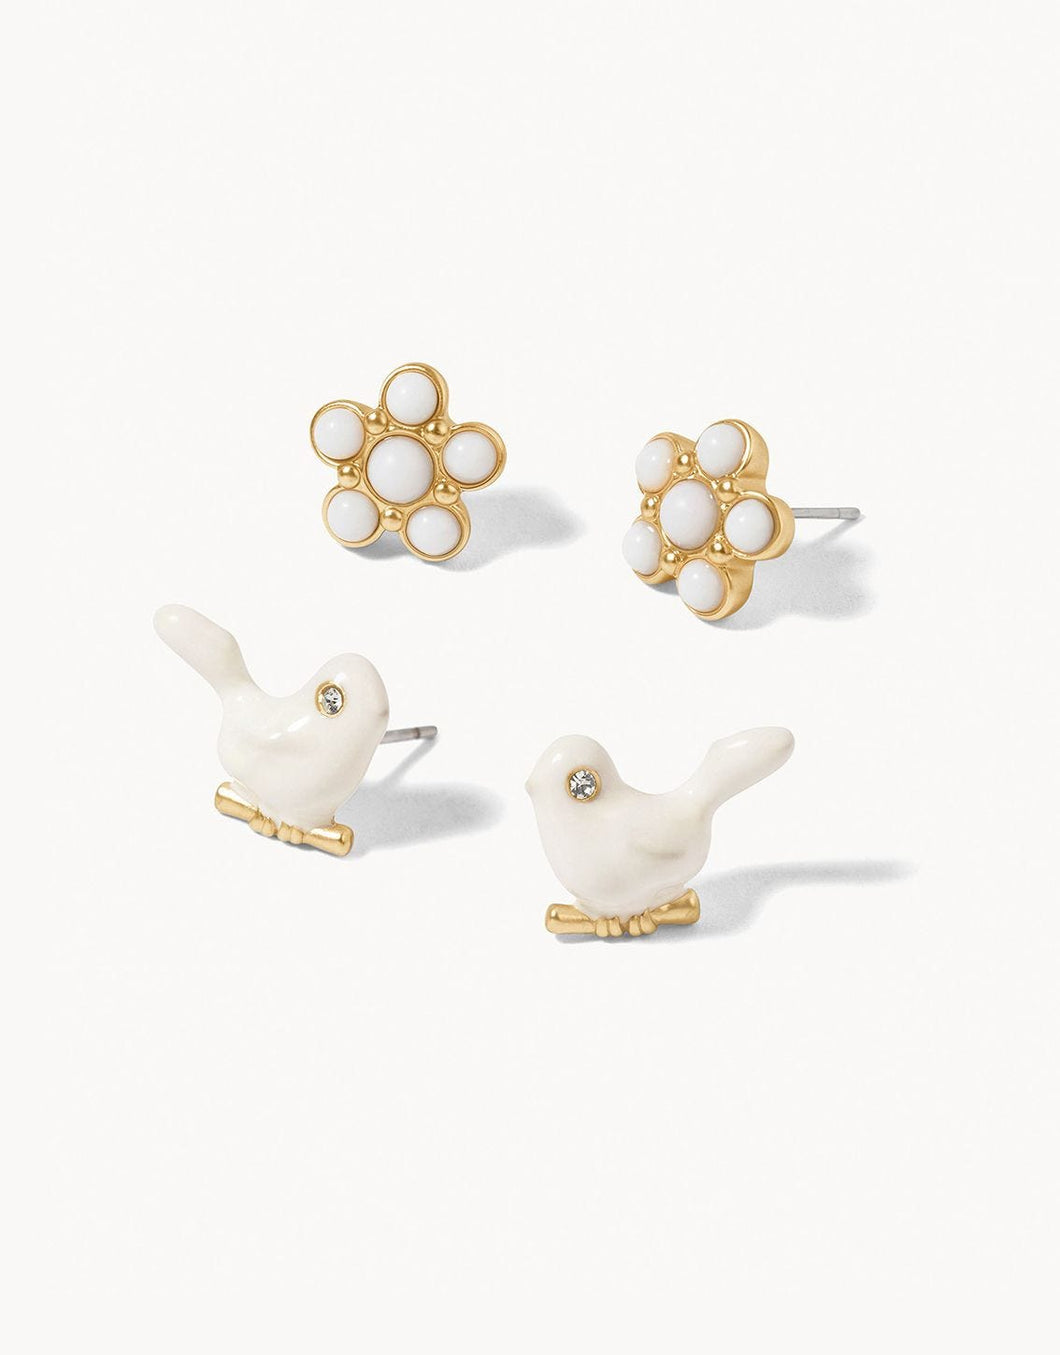 Songbird Stud Earrings Set of 2